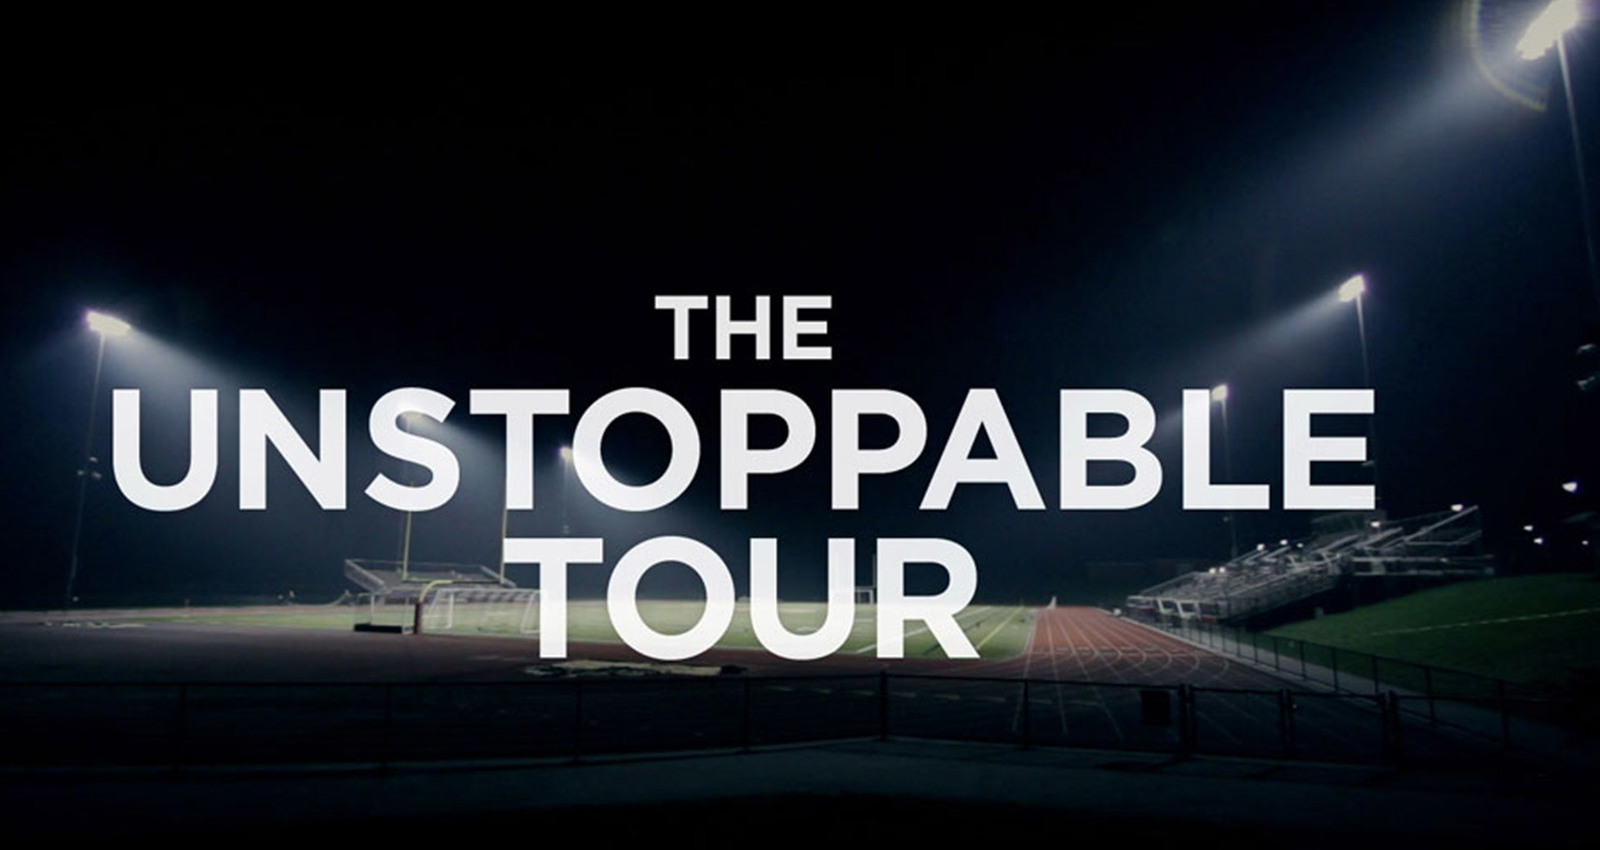 The Unstoppable Tour